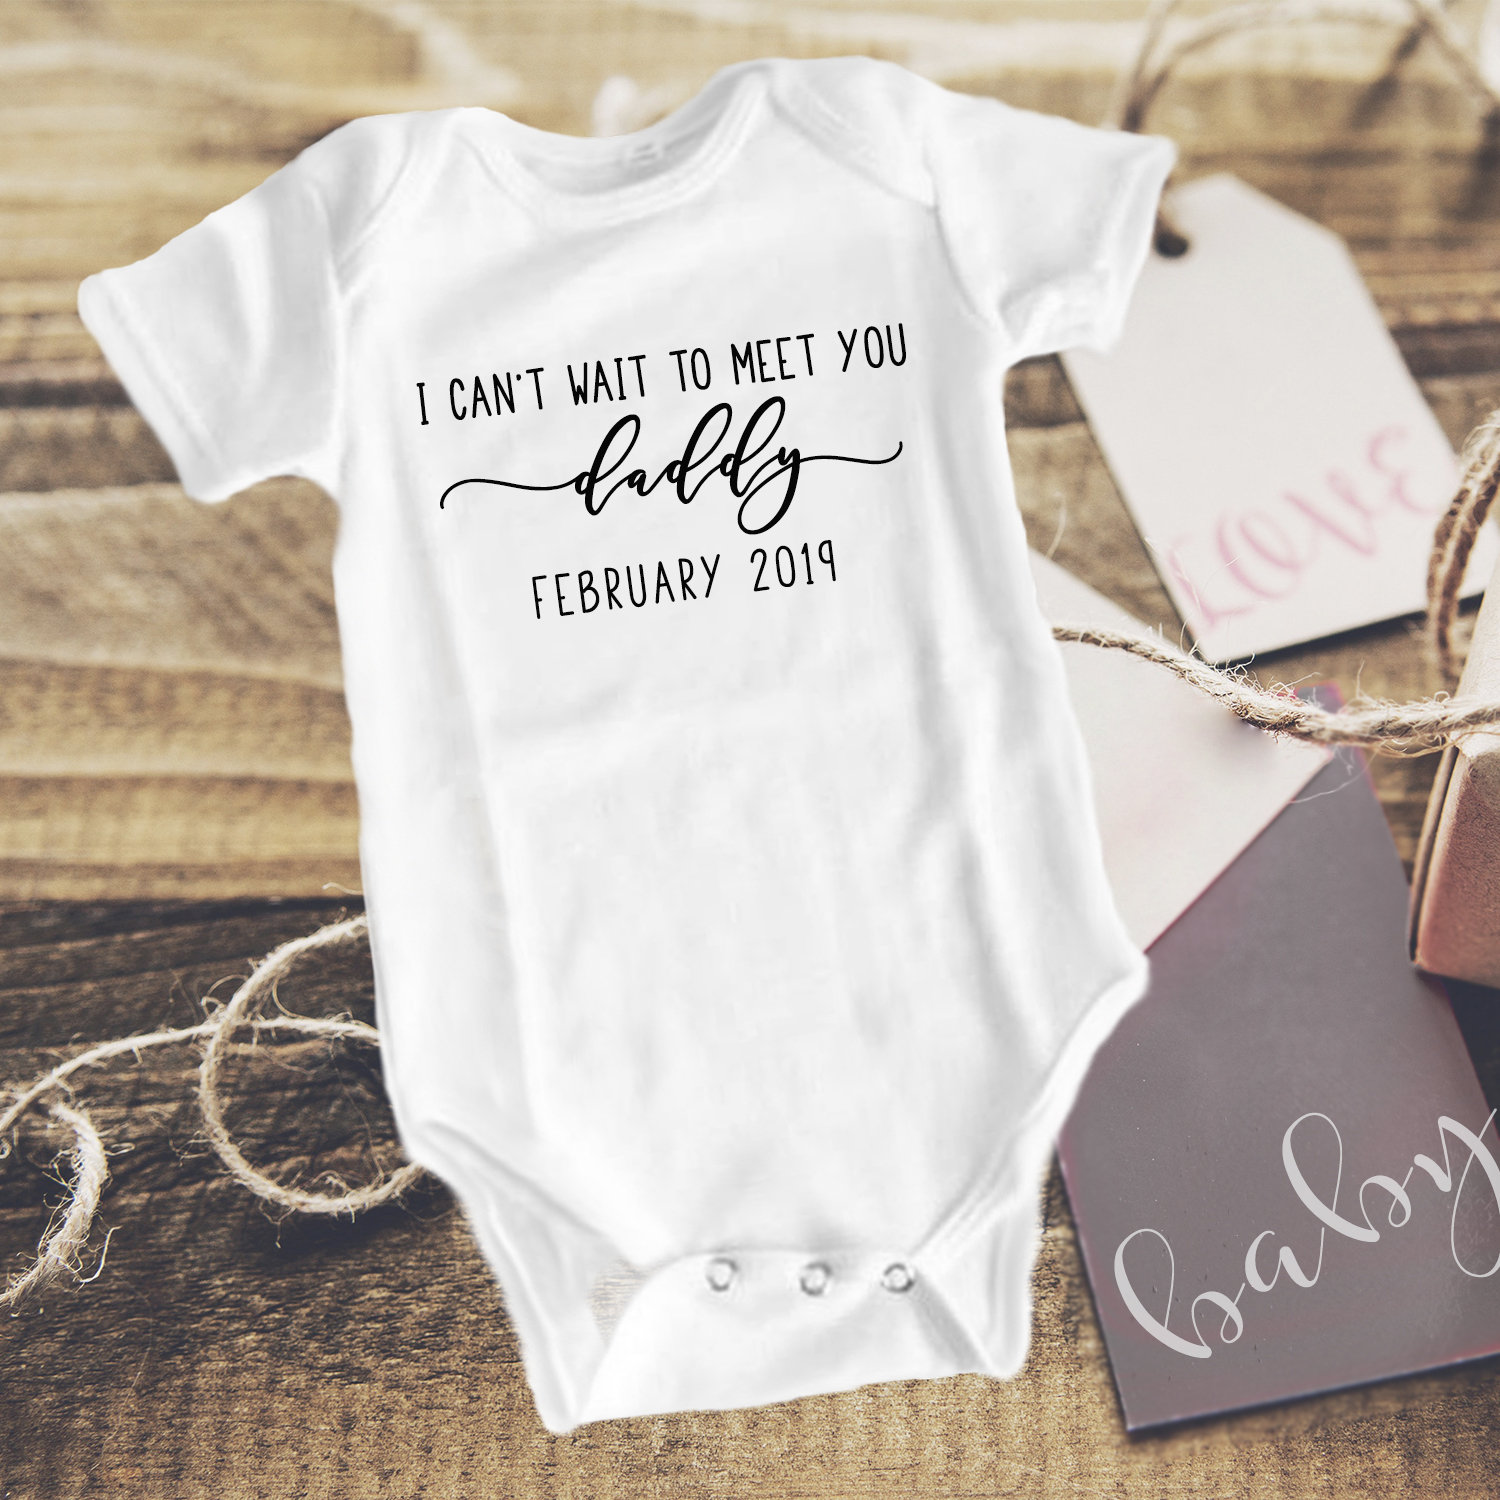 Gender Reveal To Husband Baby Boy Announcement Onesie New Dad Gift Going To Be A Dad Pregnancy Announcement Baby Boy Newborn Onesie